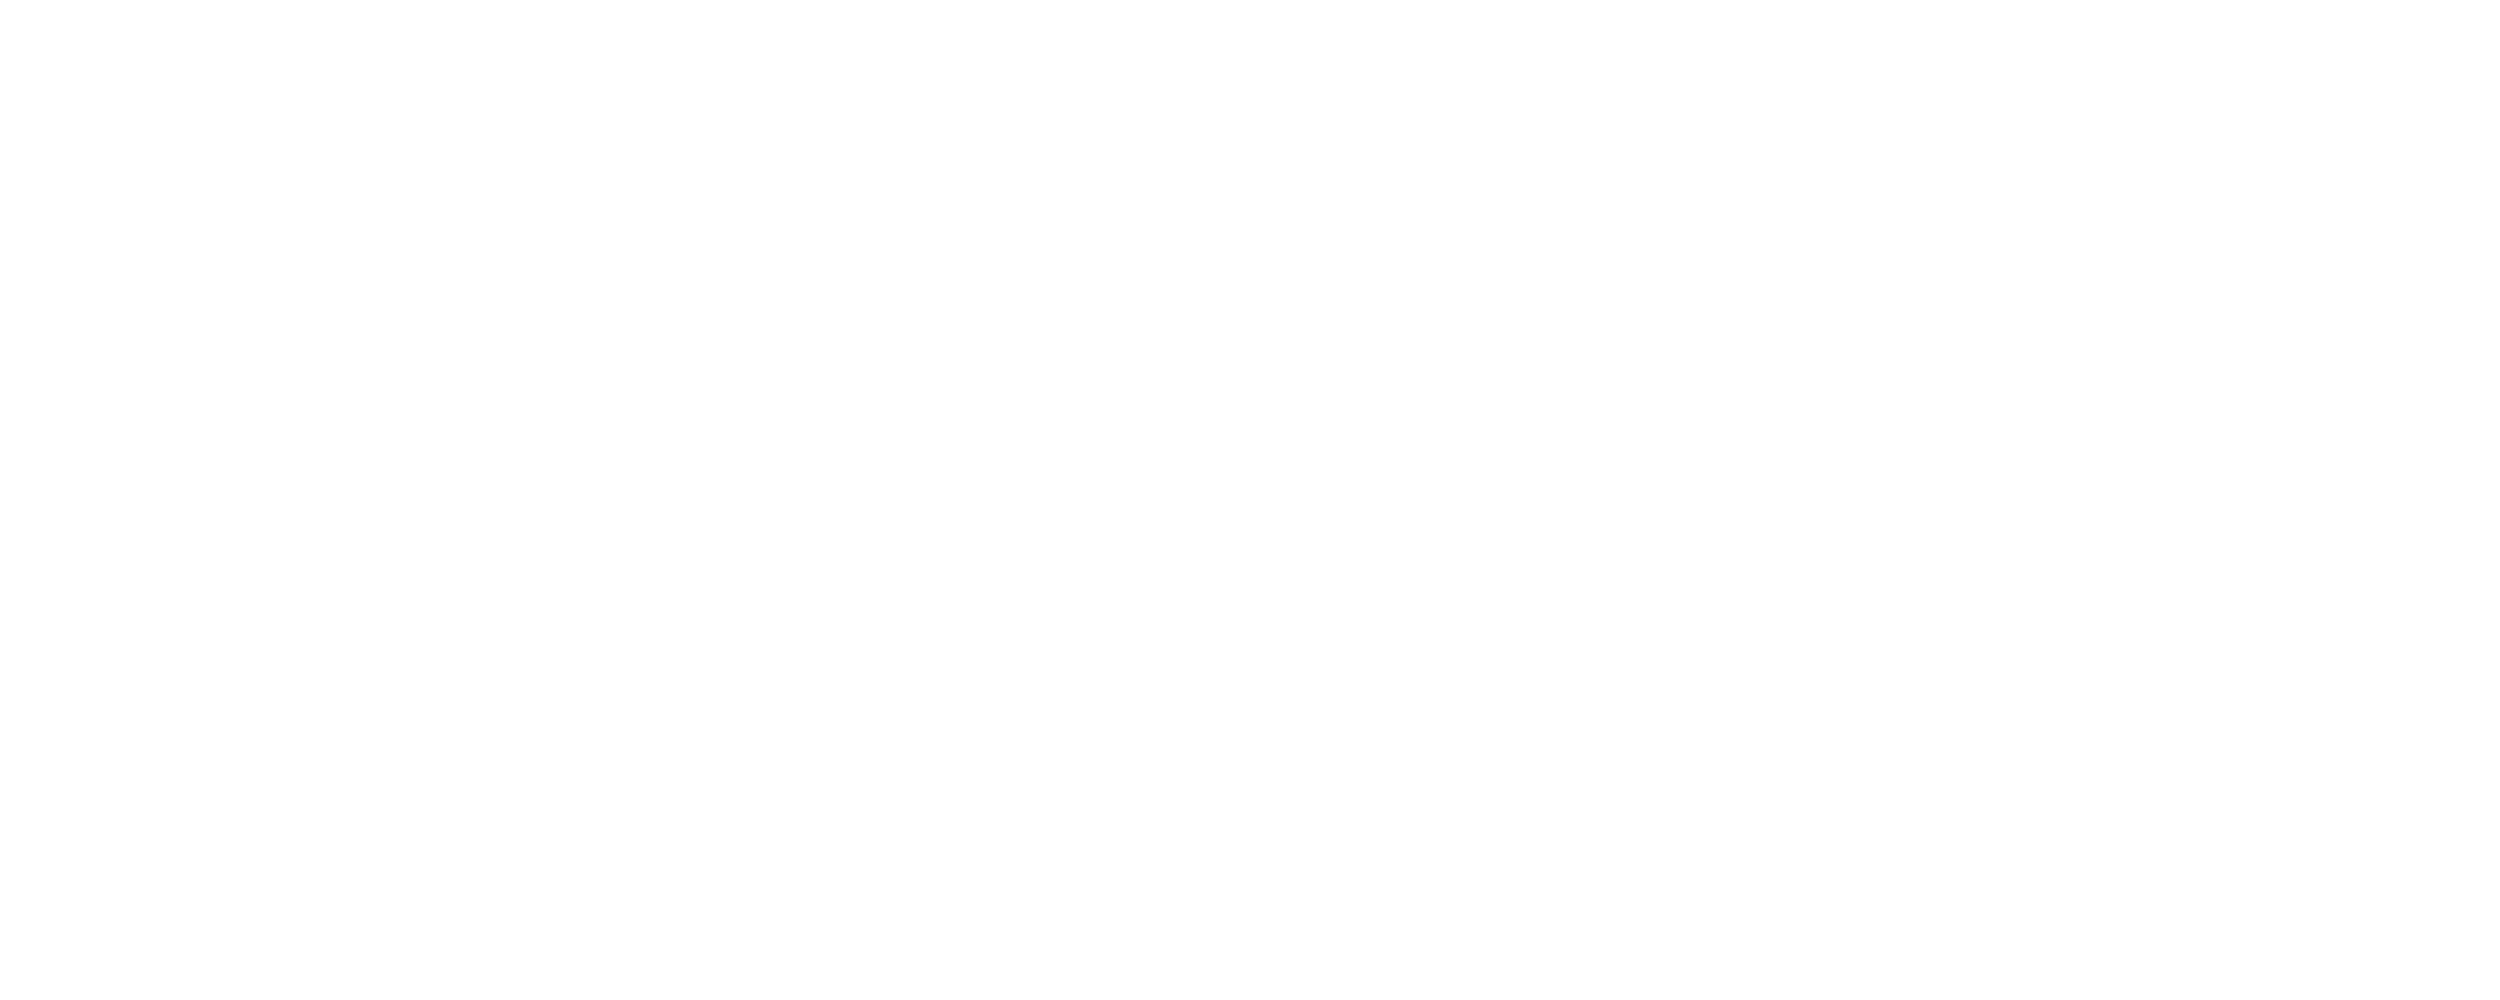 302_AngelSquare Capital HP.png